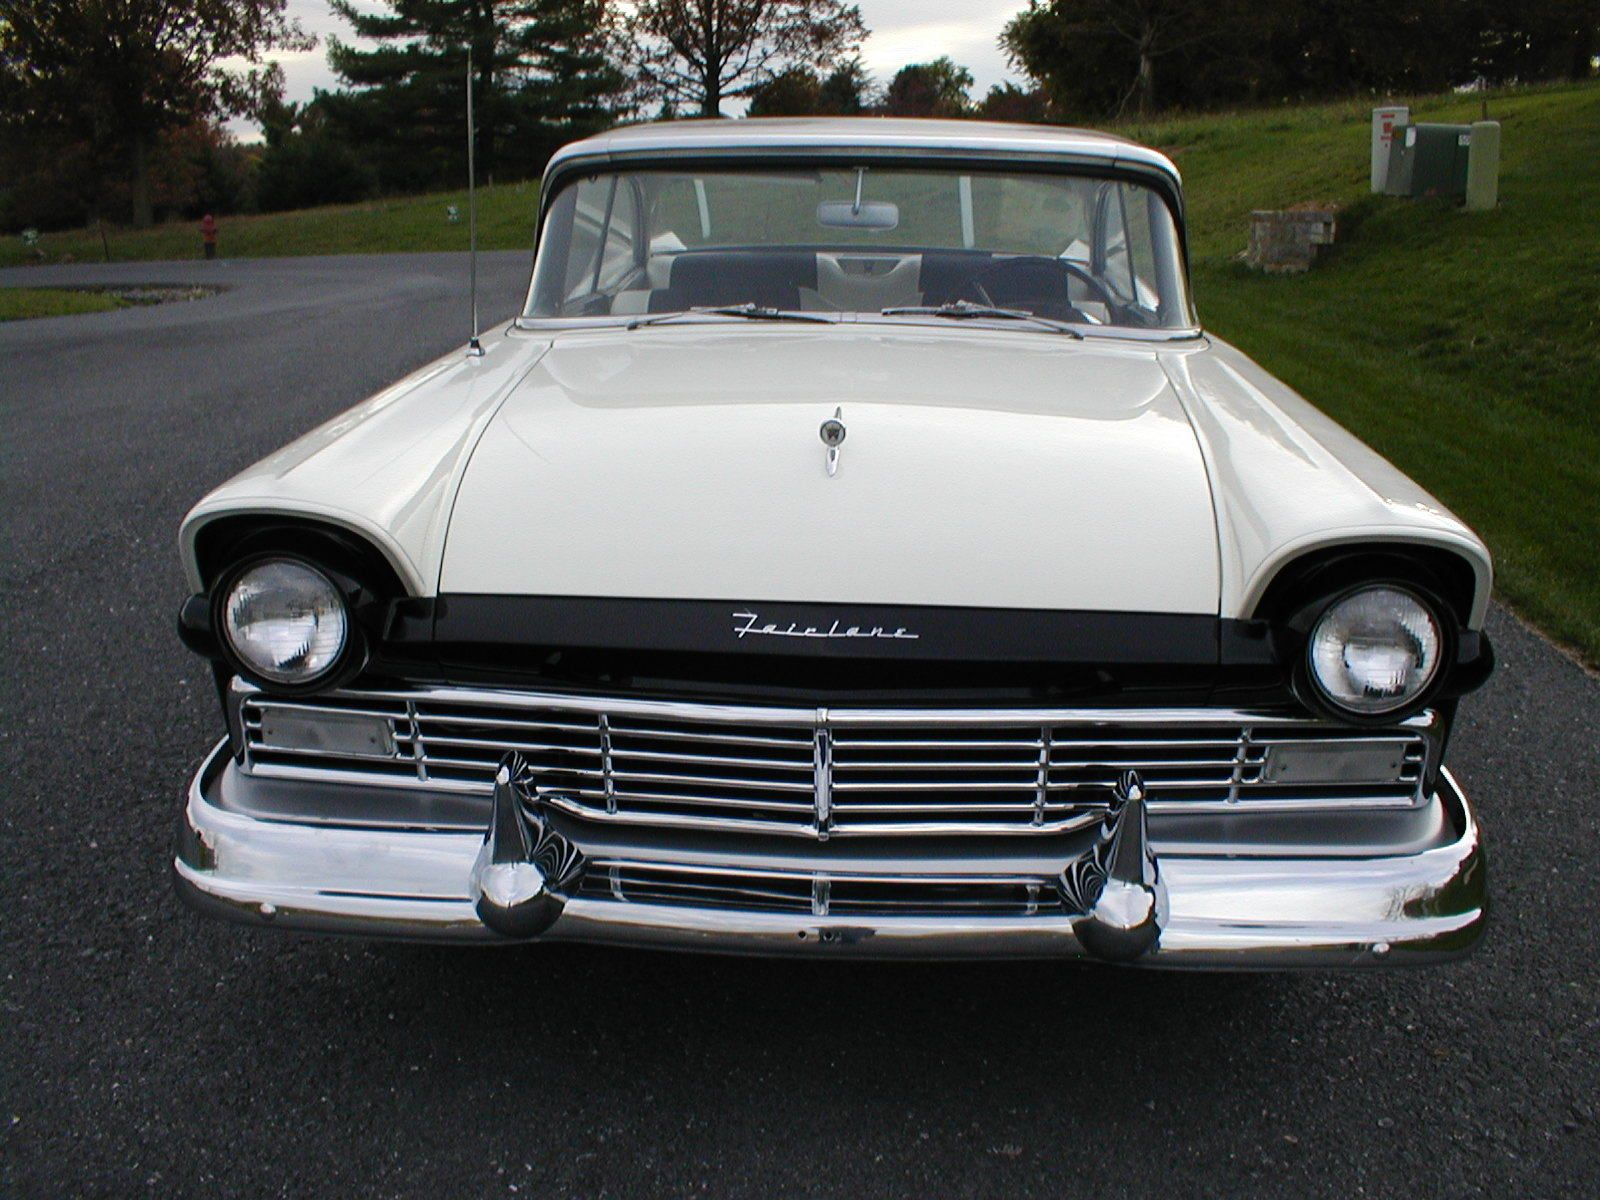 1957 Ford Fairlane Two Door Hardtop Ford Fairlane Fairlane Ford